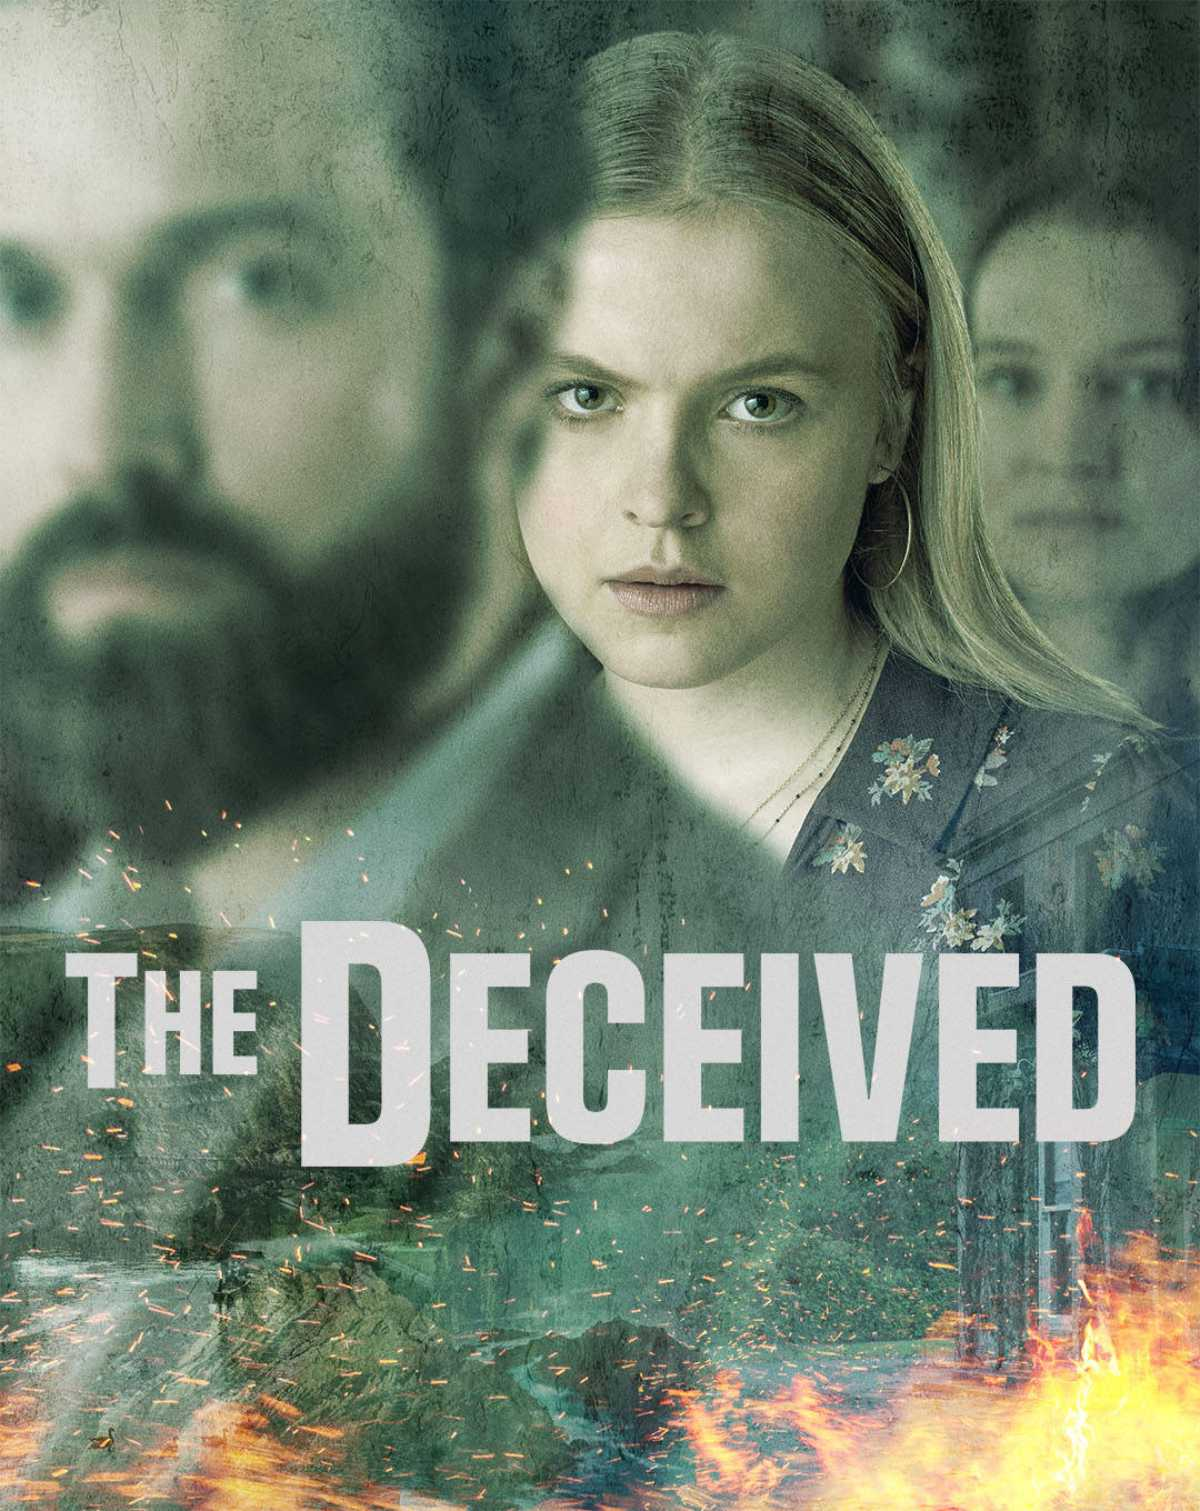 Starz July 2021 - The Deceived